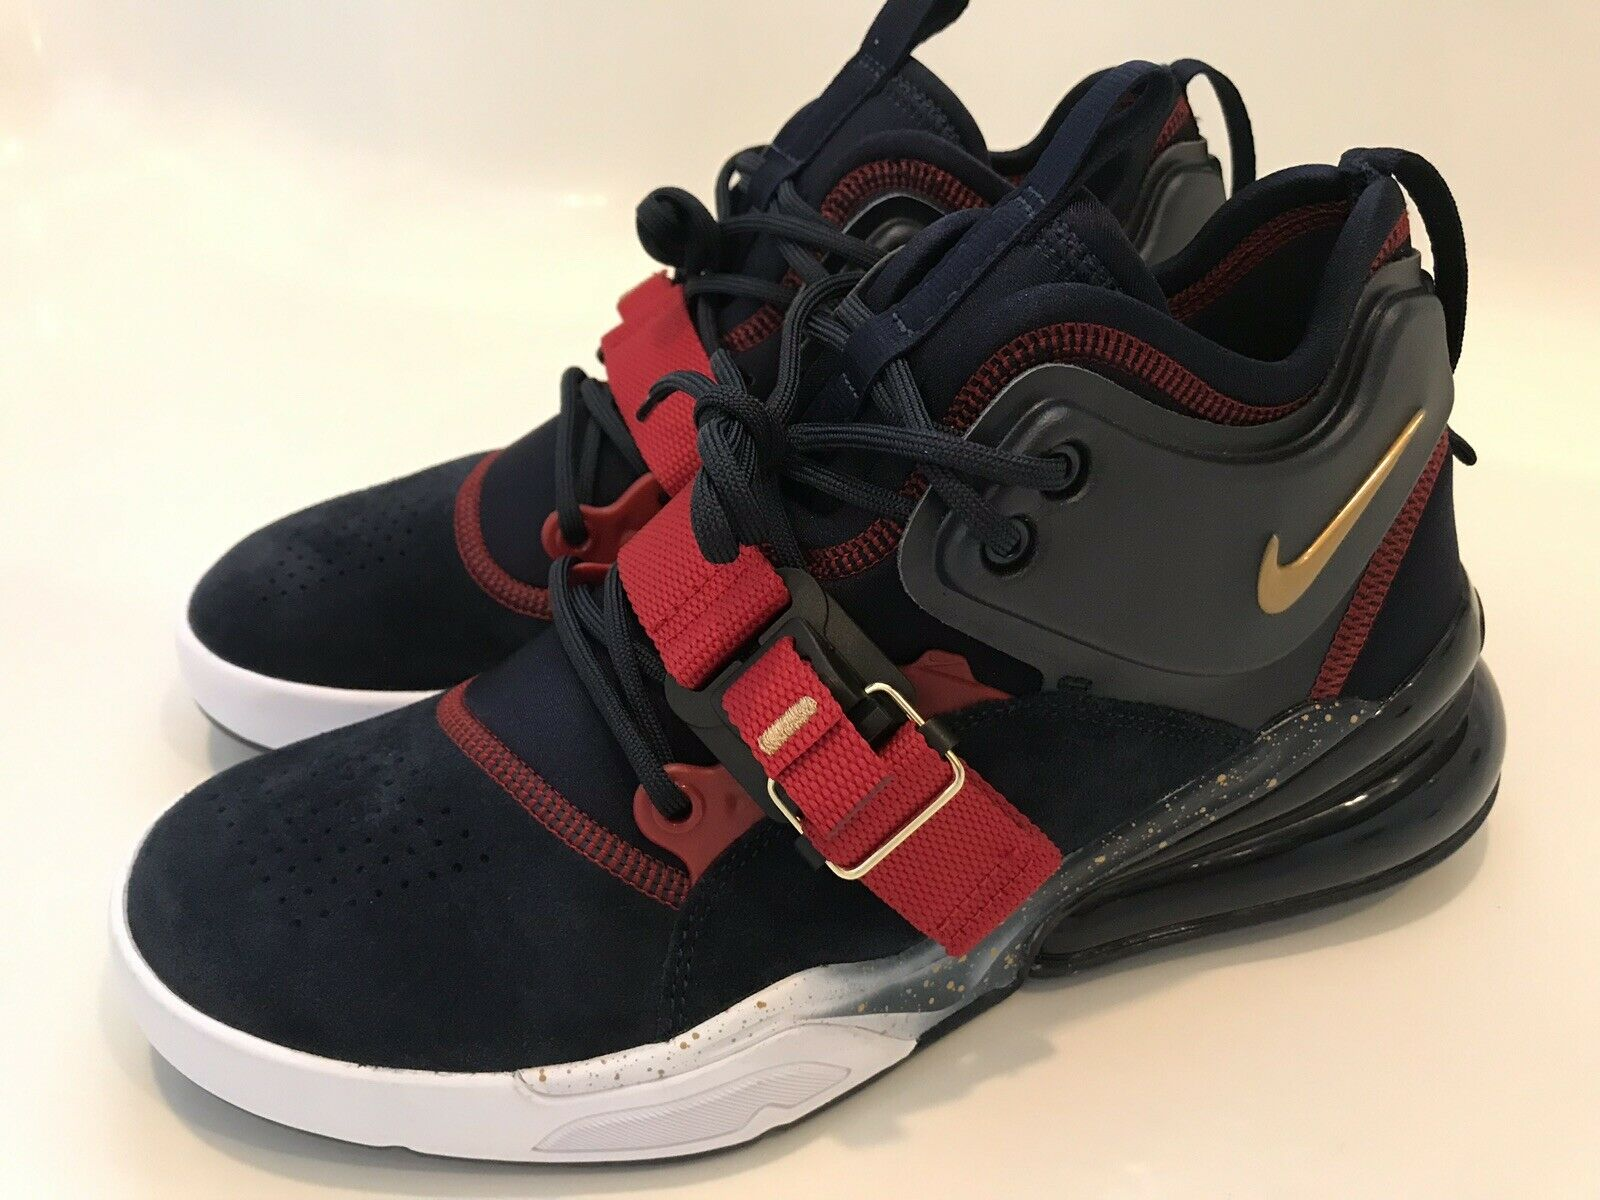 NEW NIKE AIR FORCE 270 DREAM TEAM MEN'S SHOES OBSIDIAN gold-RED SIZE 8.5